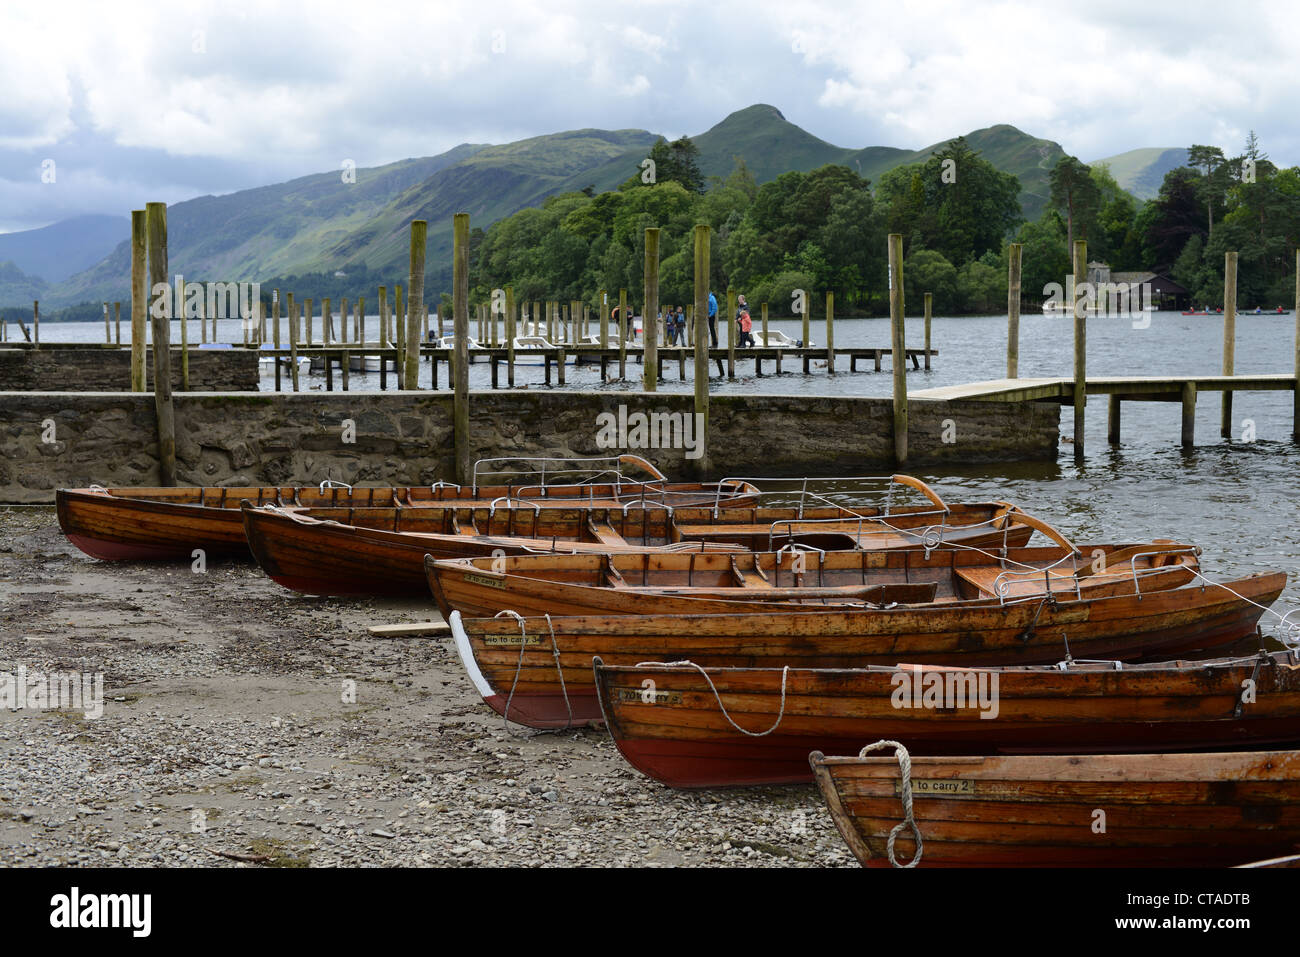 Rowing boats on the shore of Derwent Water at Keswick, Lake District National Park, Cumbria, UK - Stock Image